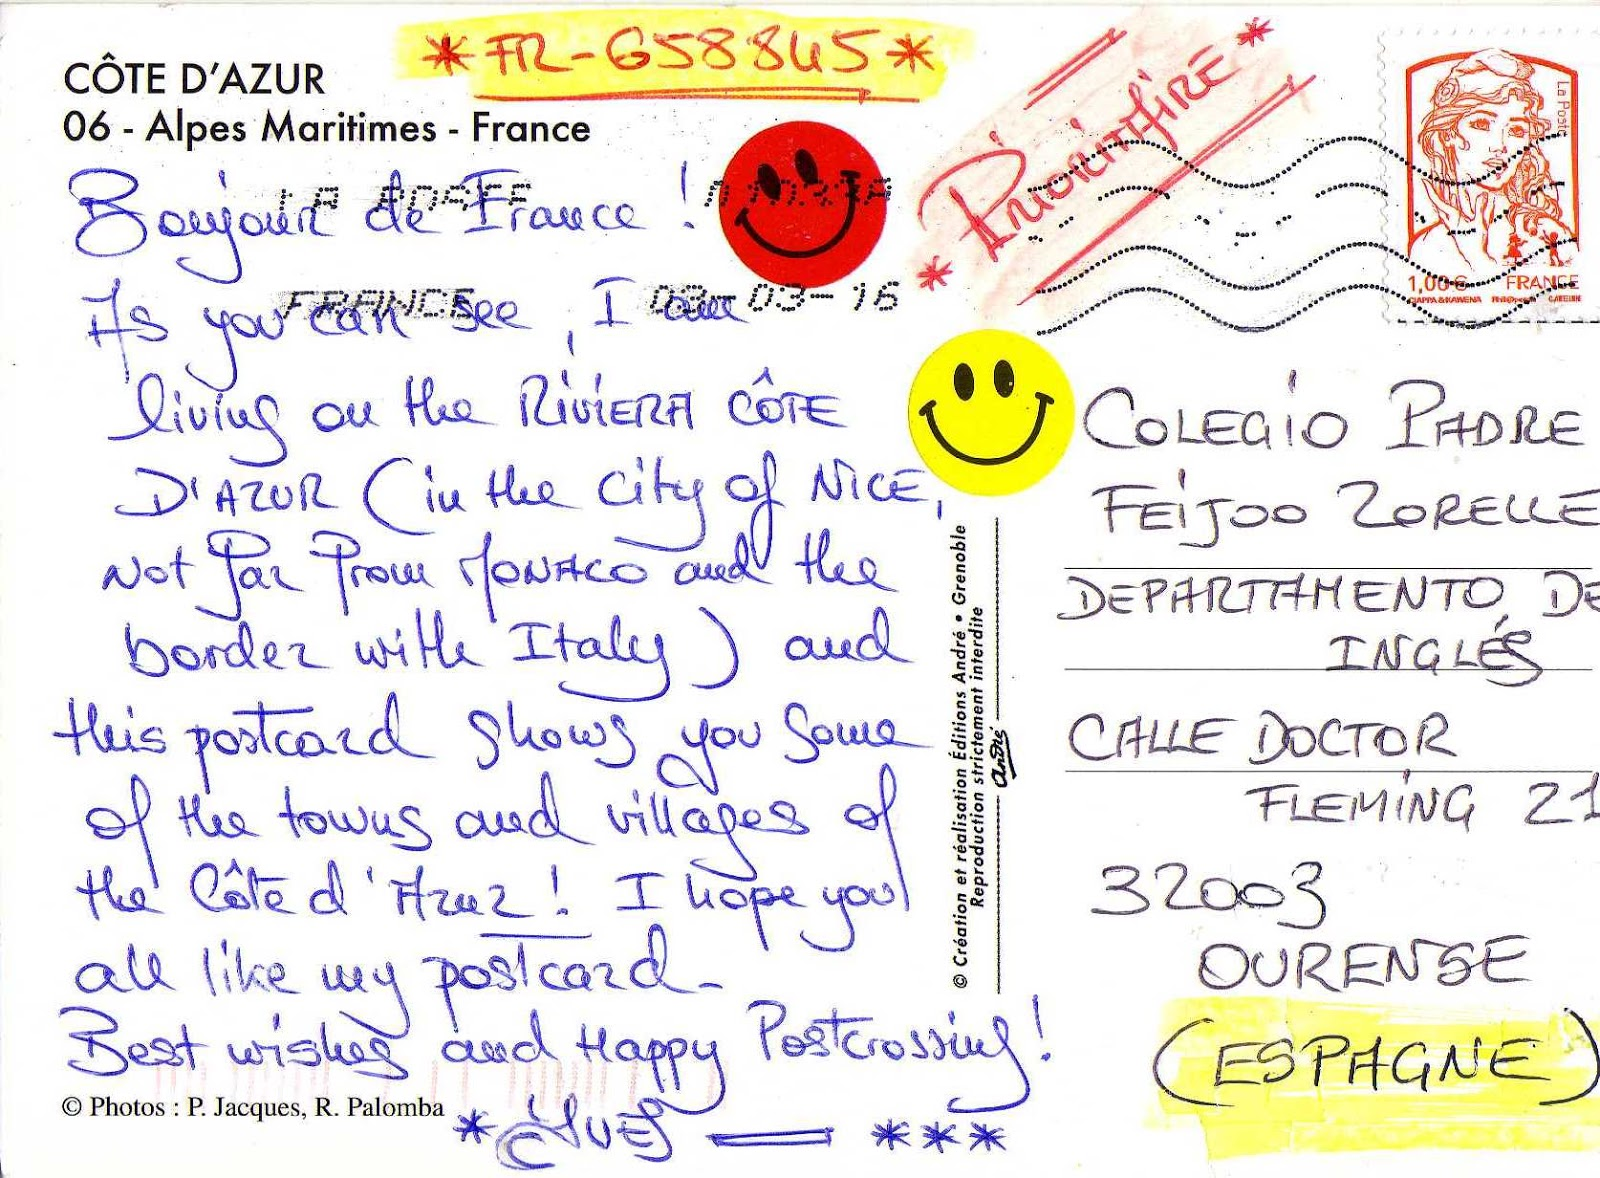 Www Jolie Carte Com From Ourense To The World Postcrossing At Padre Feijoo Zorelle